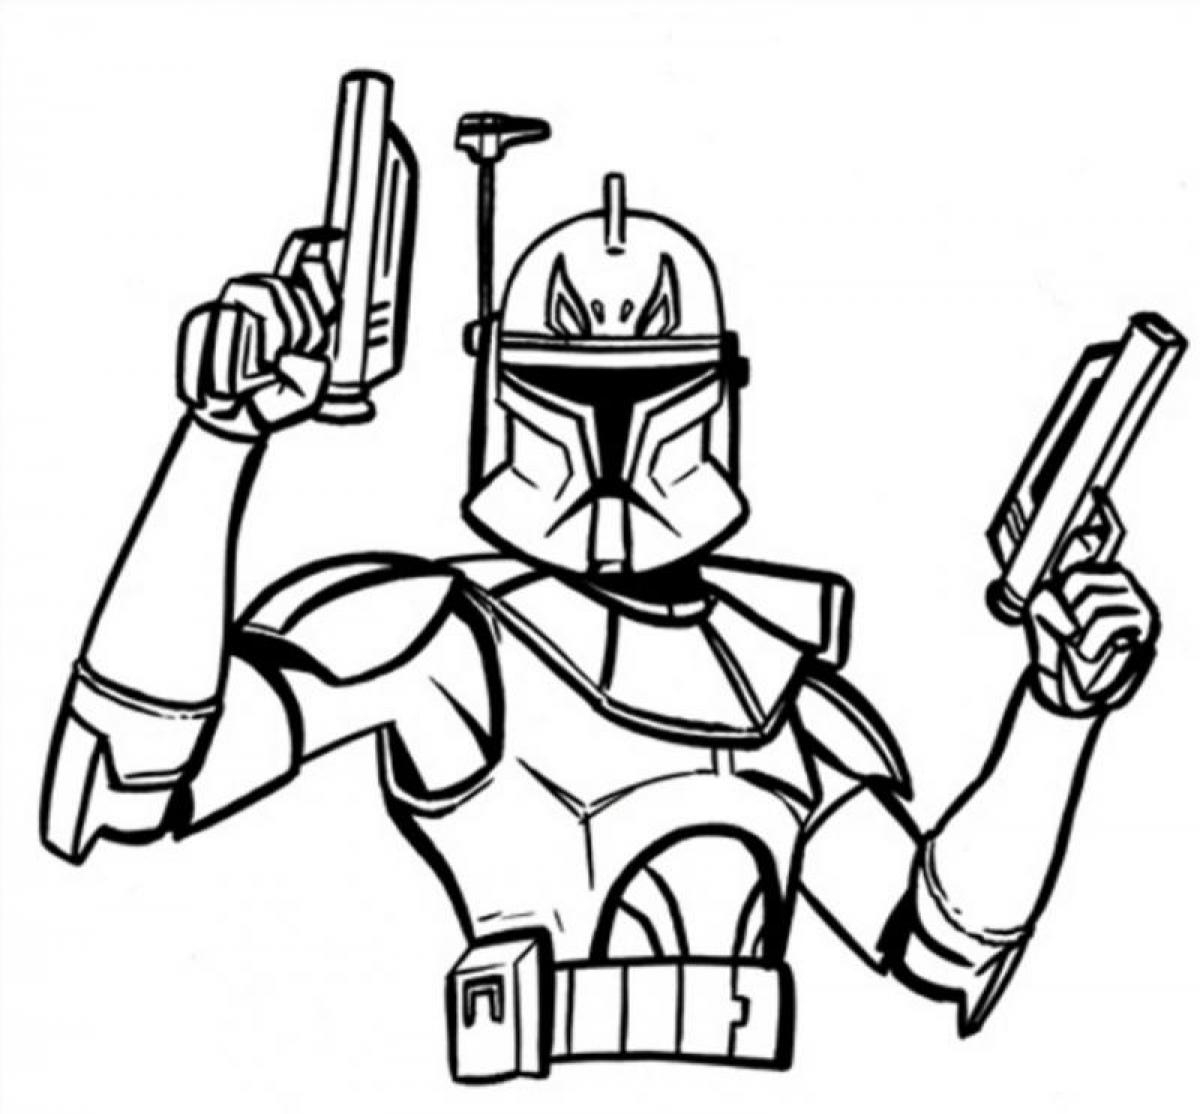 6 Star Wars Characters Free Coloring Page Kids Movies and Pages Collection Of Unique Star Wars Cartoon Characters Coloring Pages Collection to Print